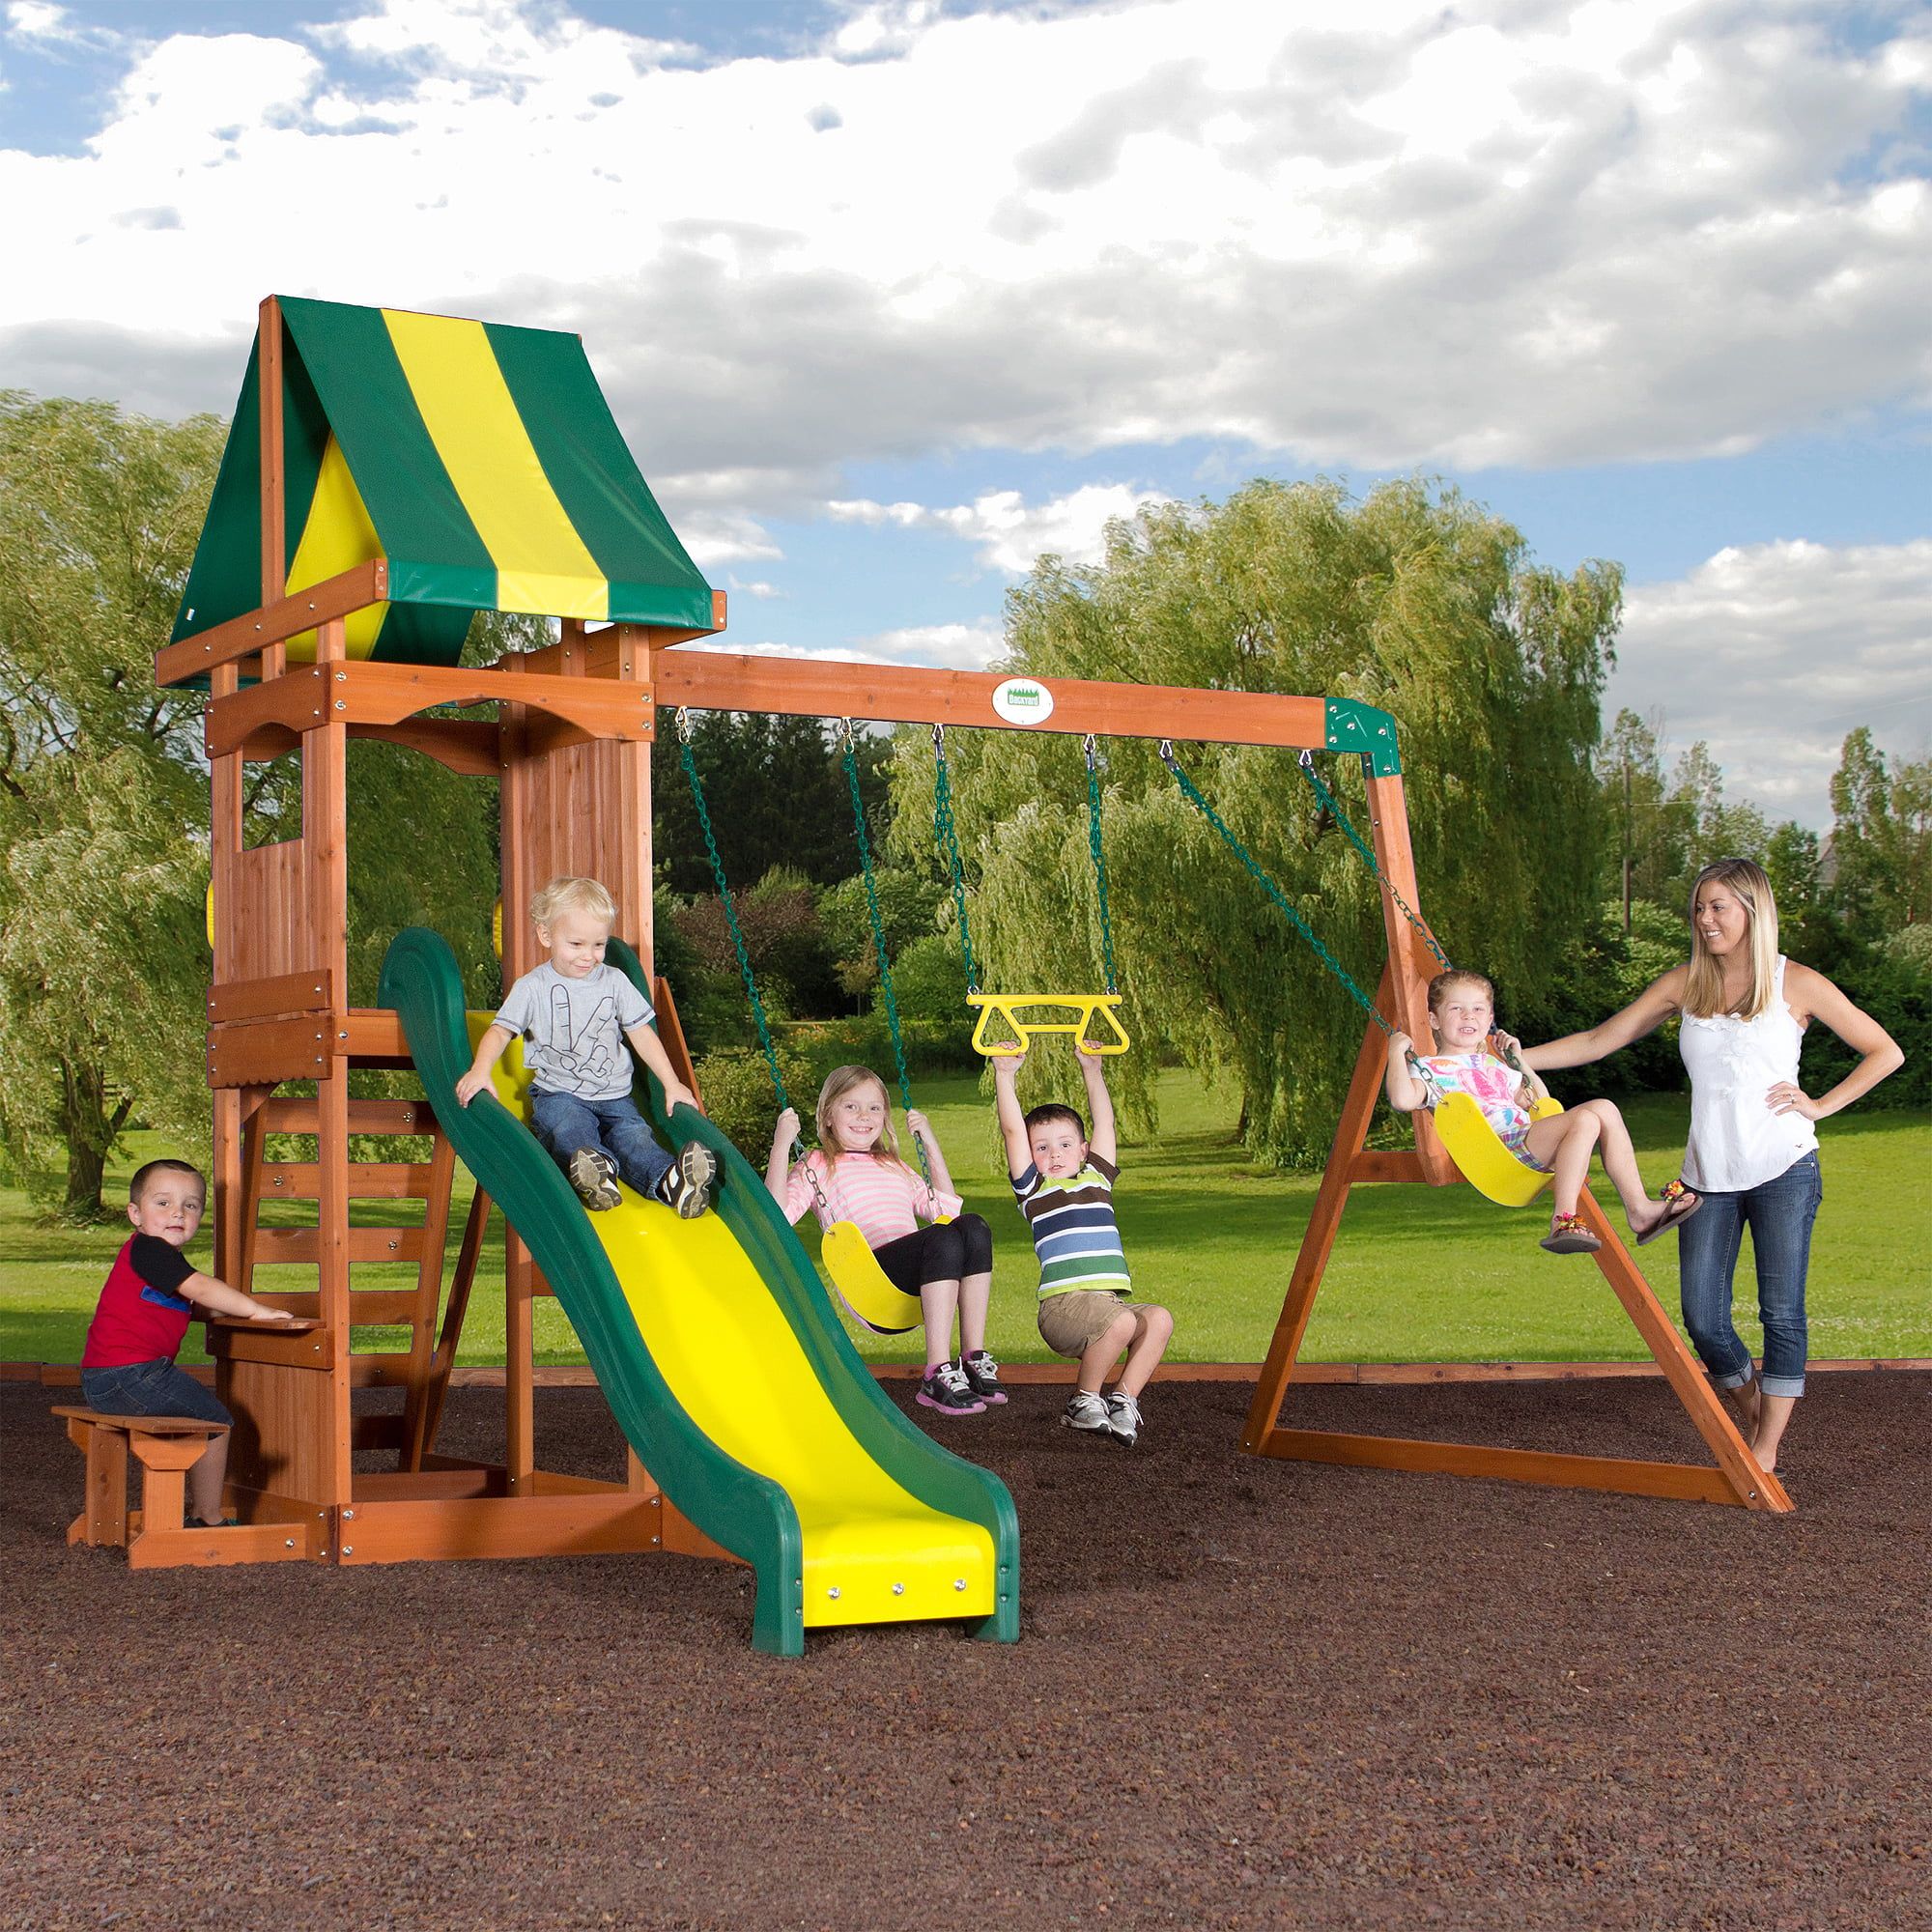 Gorilla Playsets Frontier Cedar Wooden Swing Set Walmartcom - Backyard playground equipment